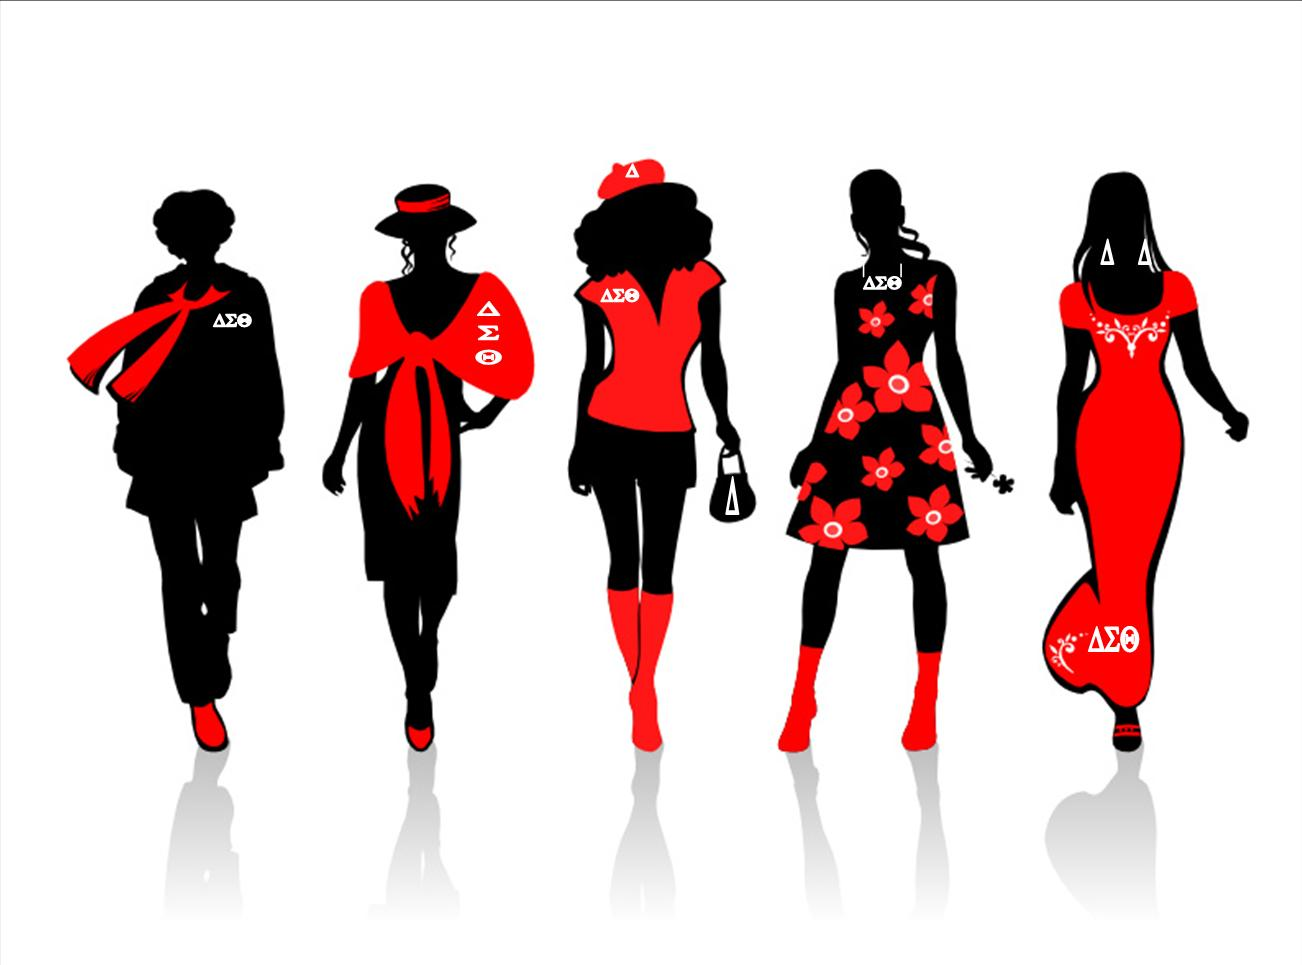 Delta sigma theta the ladies all in red biocorpaavc Gallery